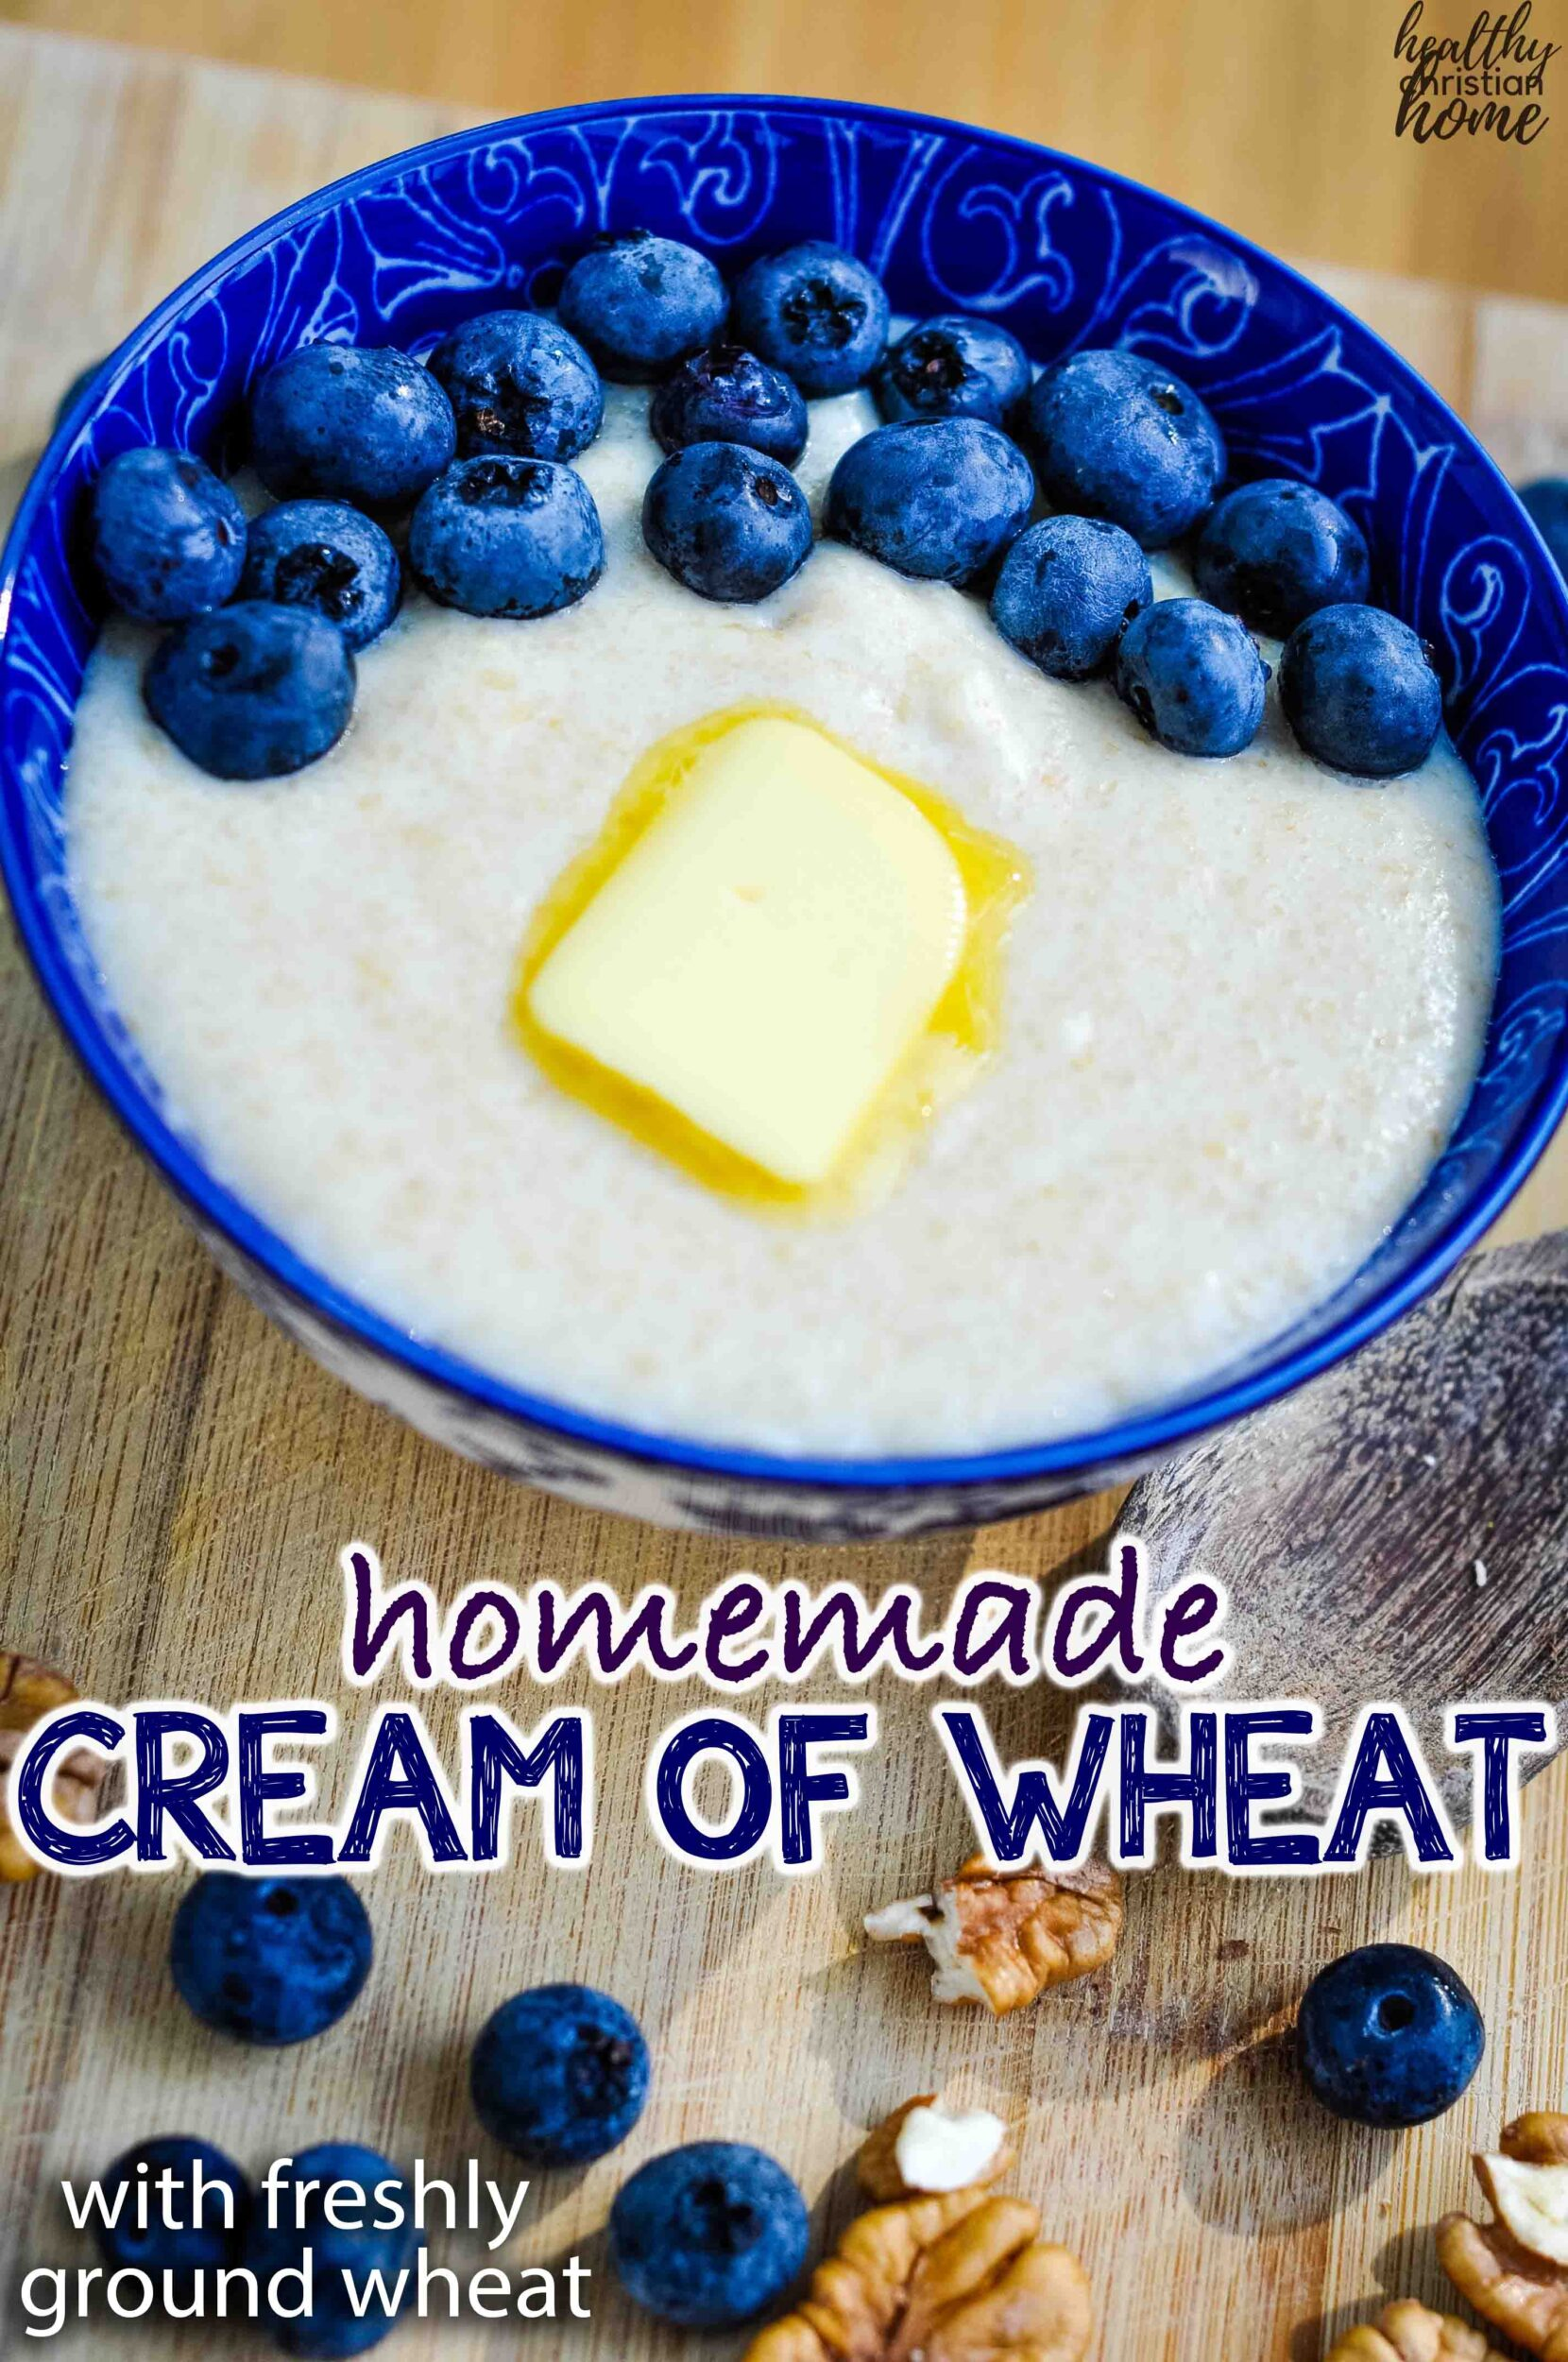 Cream of wheat with blueberries in a blue bowl.